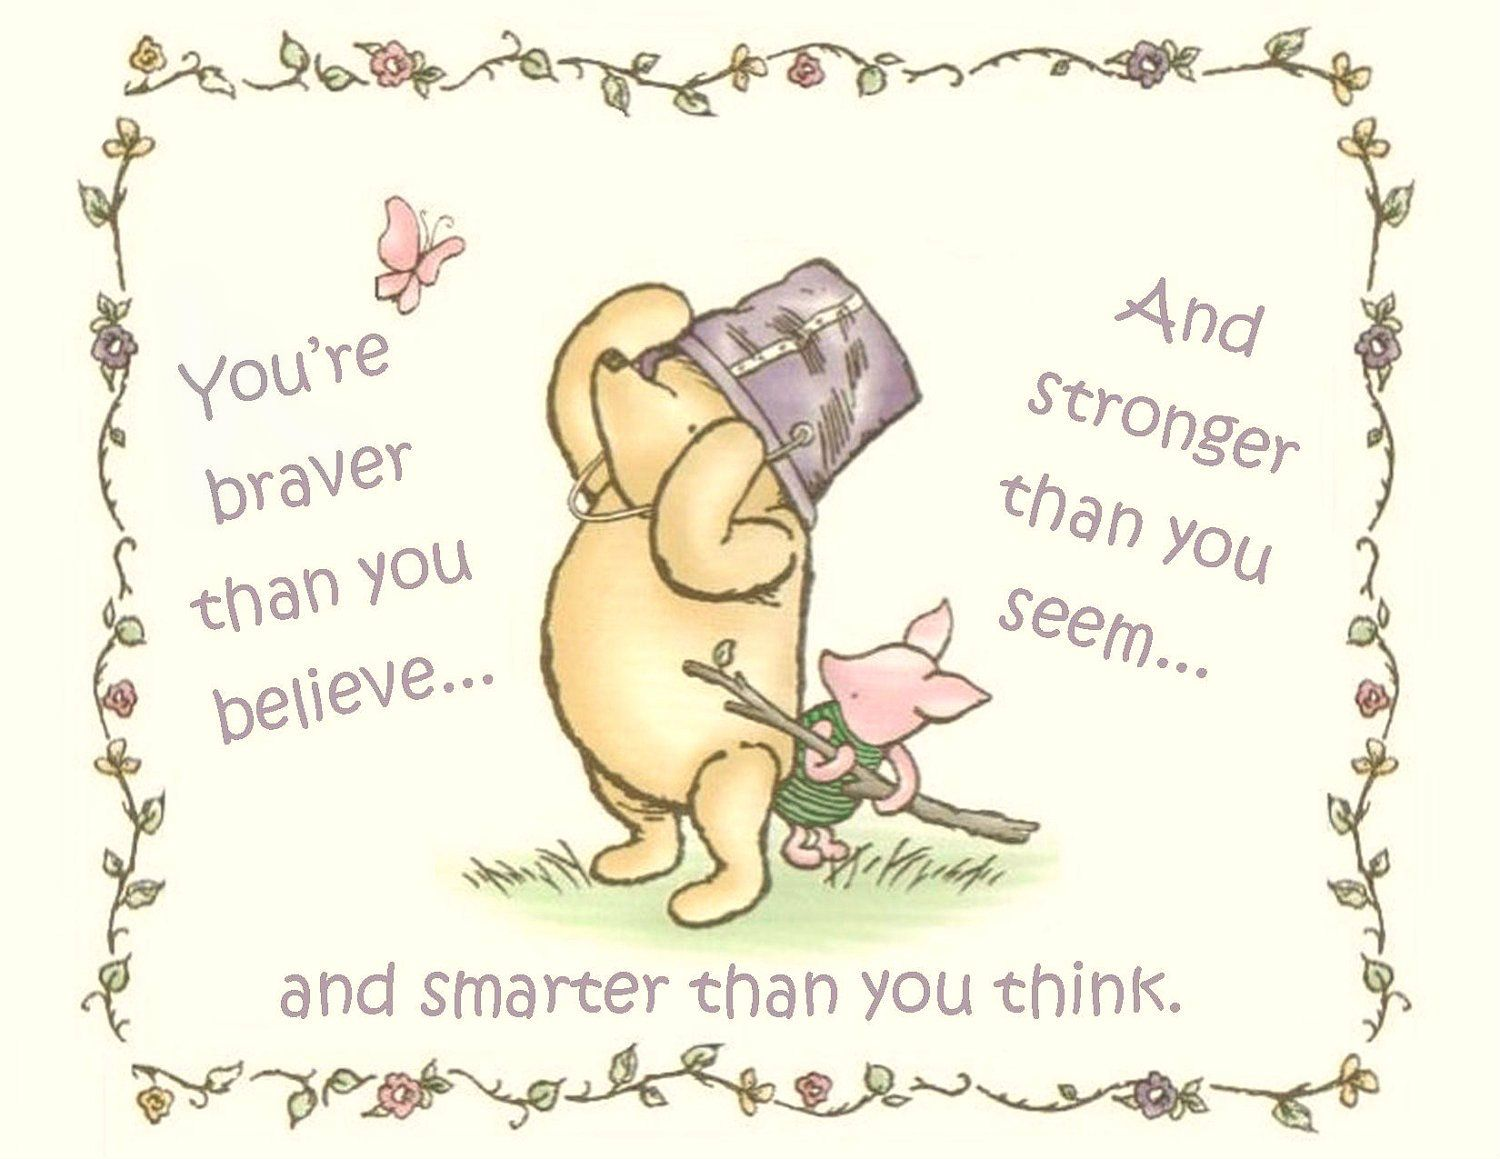 winnie the pooh quotes - Yahoo Search Results | Education Posters ...